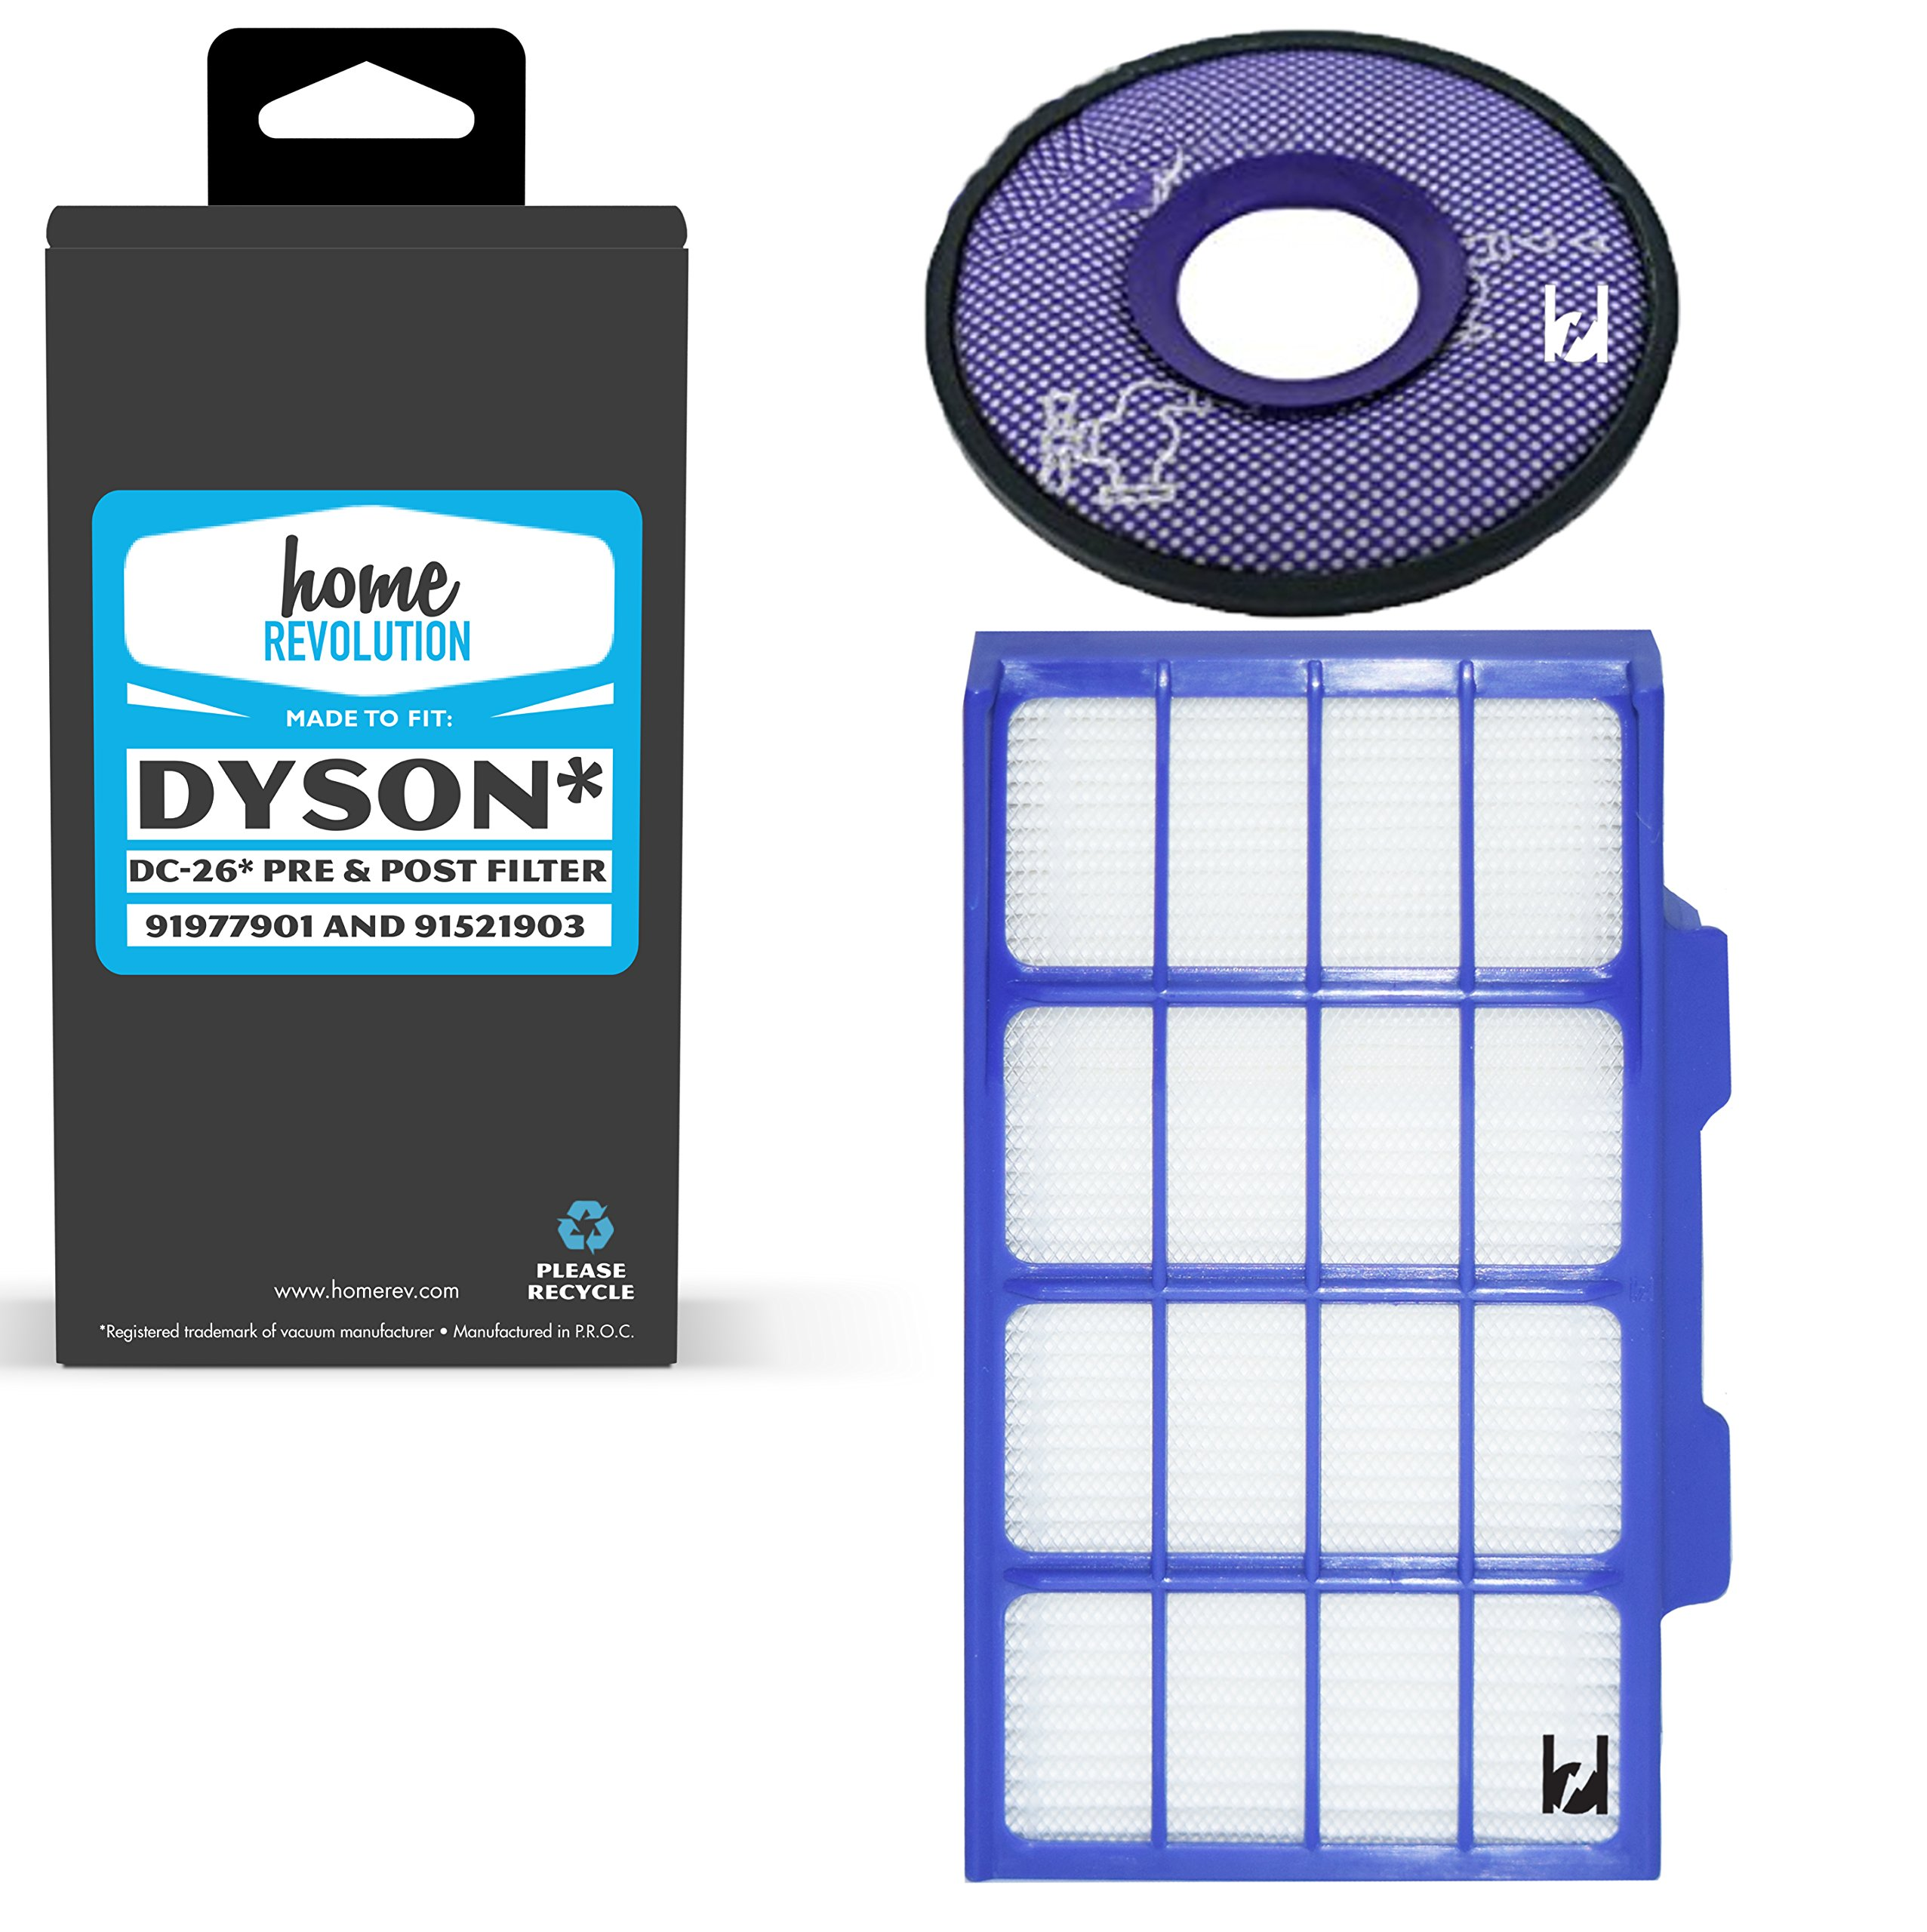 Home Revolution Replacement HEPA Filter, Fits Dyson DC26 Vacuum Models and Part 919779-01 & 915219-03